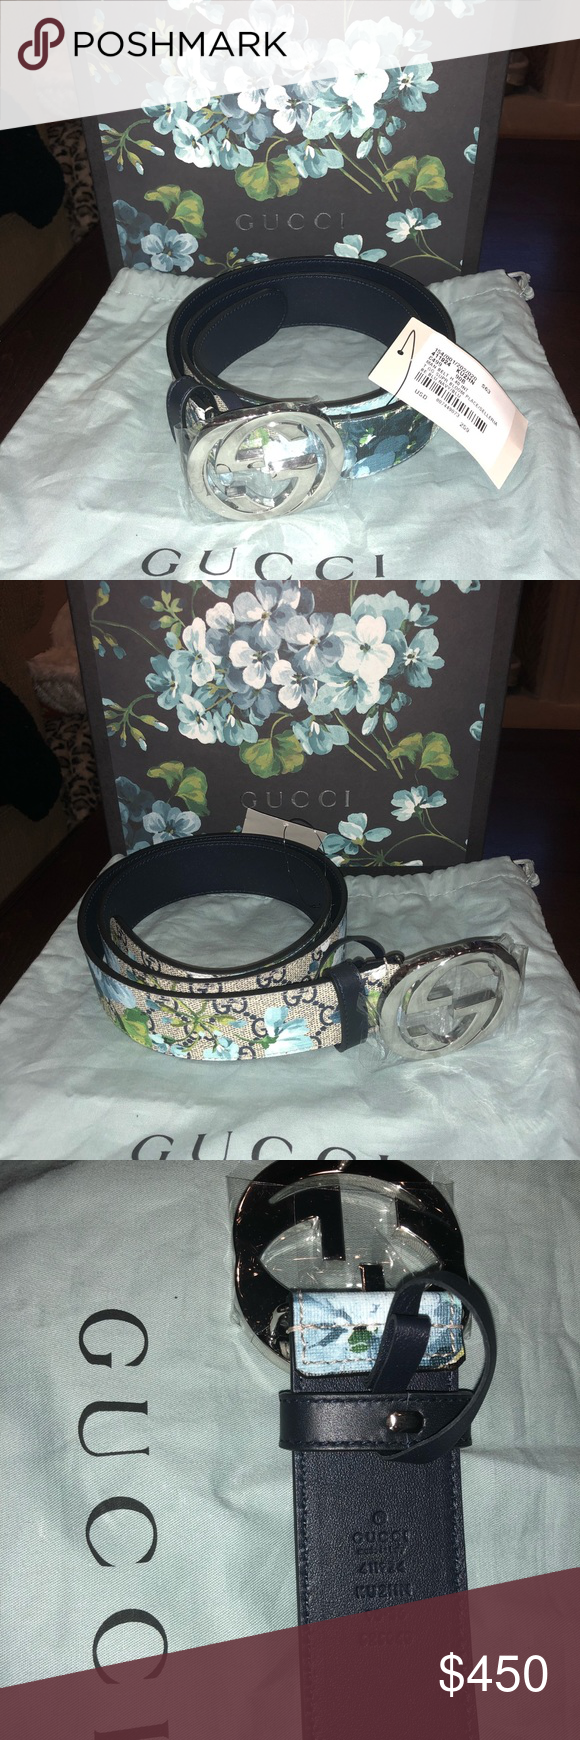 a75016741 FIRM NIB AUTH Gucci GG Supreme belt blue blooms 90 New in box & with tags